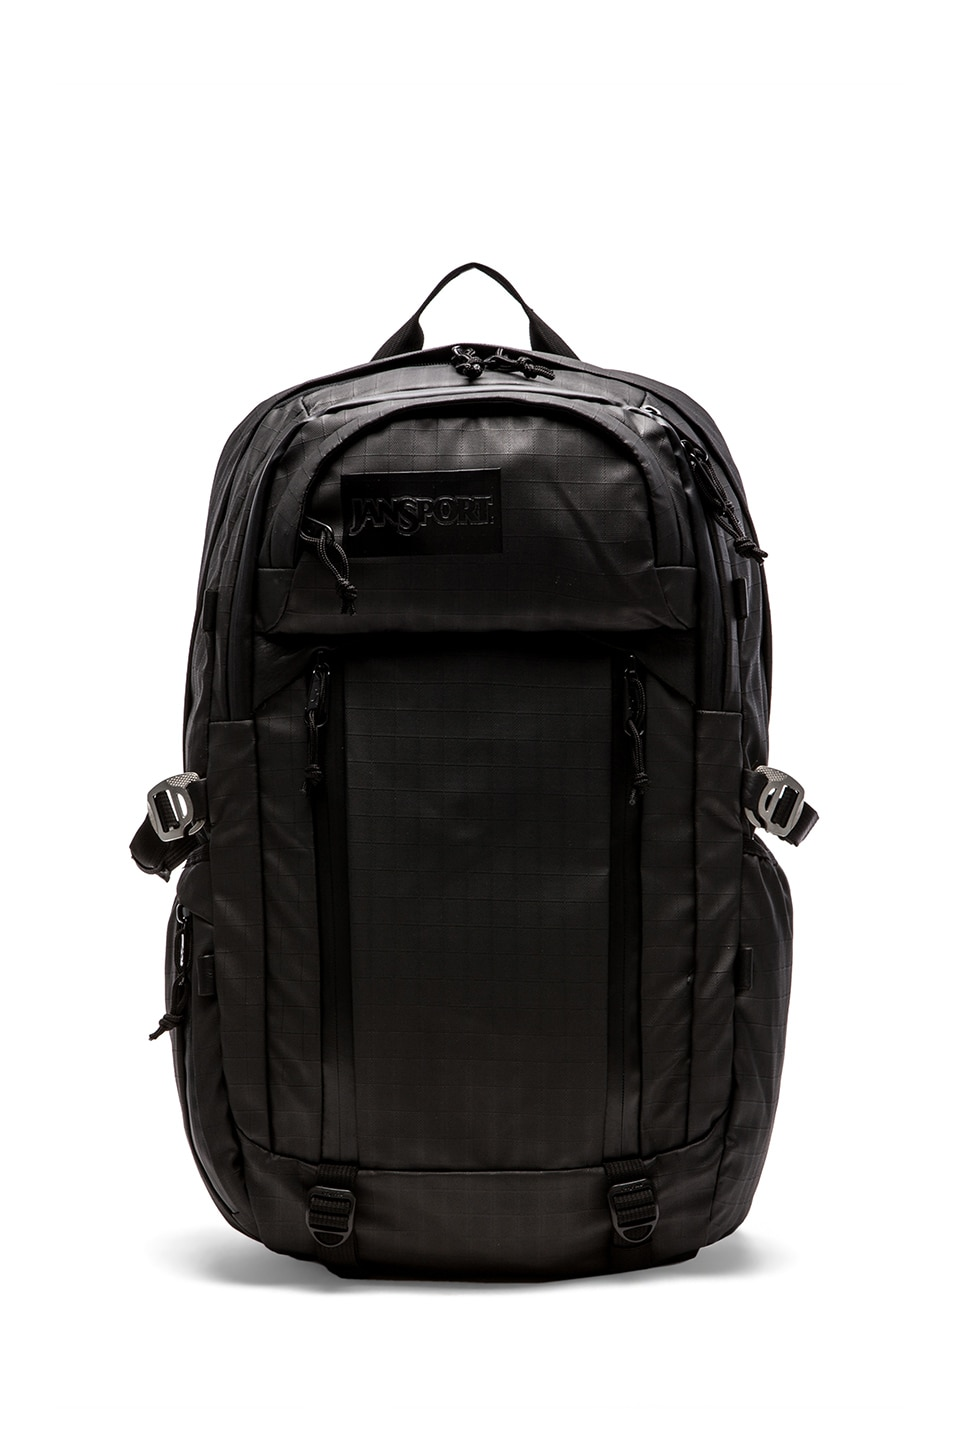 Jansport Onyx Oxidation Backpack in Black Onyx